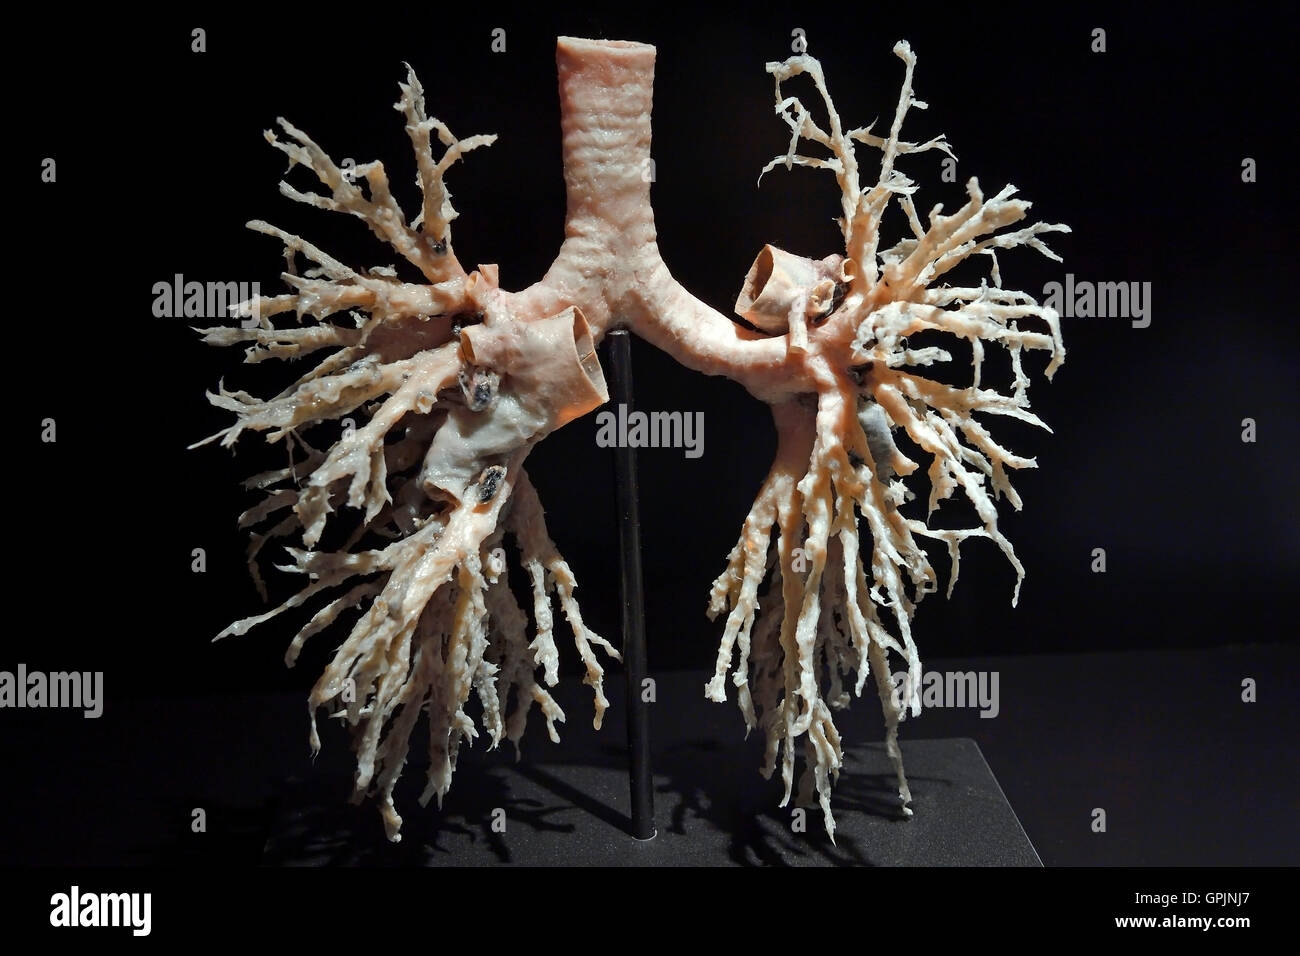 Plastinate, bronchial tree of human lungs, Body Worlds, Menschen Museum, Berlin, Germany - Stock Image